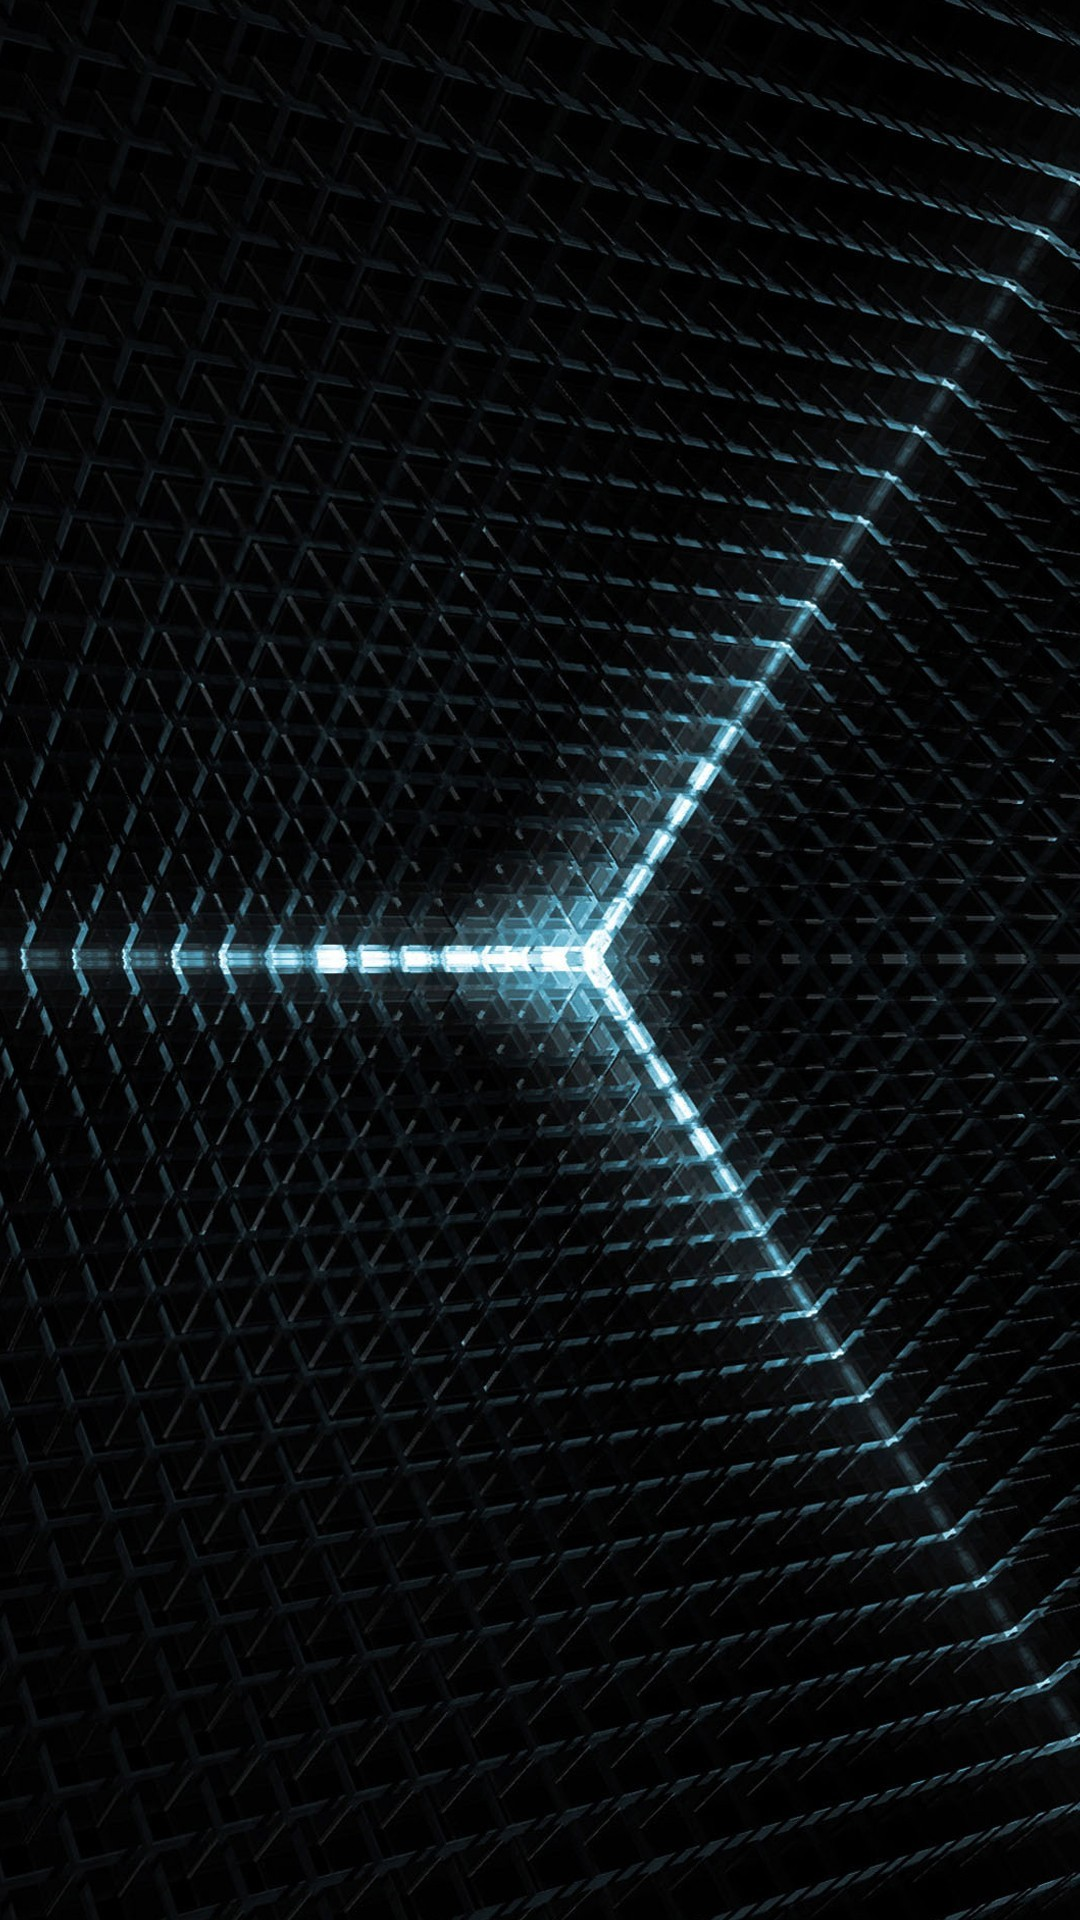 Awesome mobile wallpaper 45517 1080x1920 px for Wallpaper mobile home walls